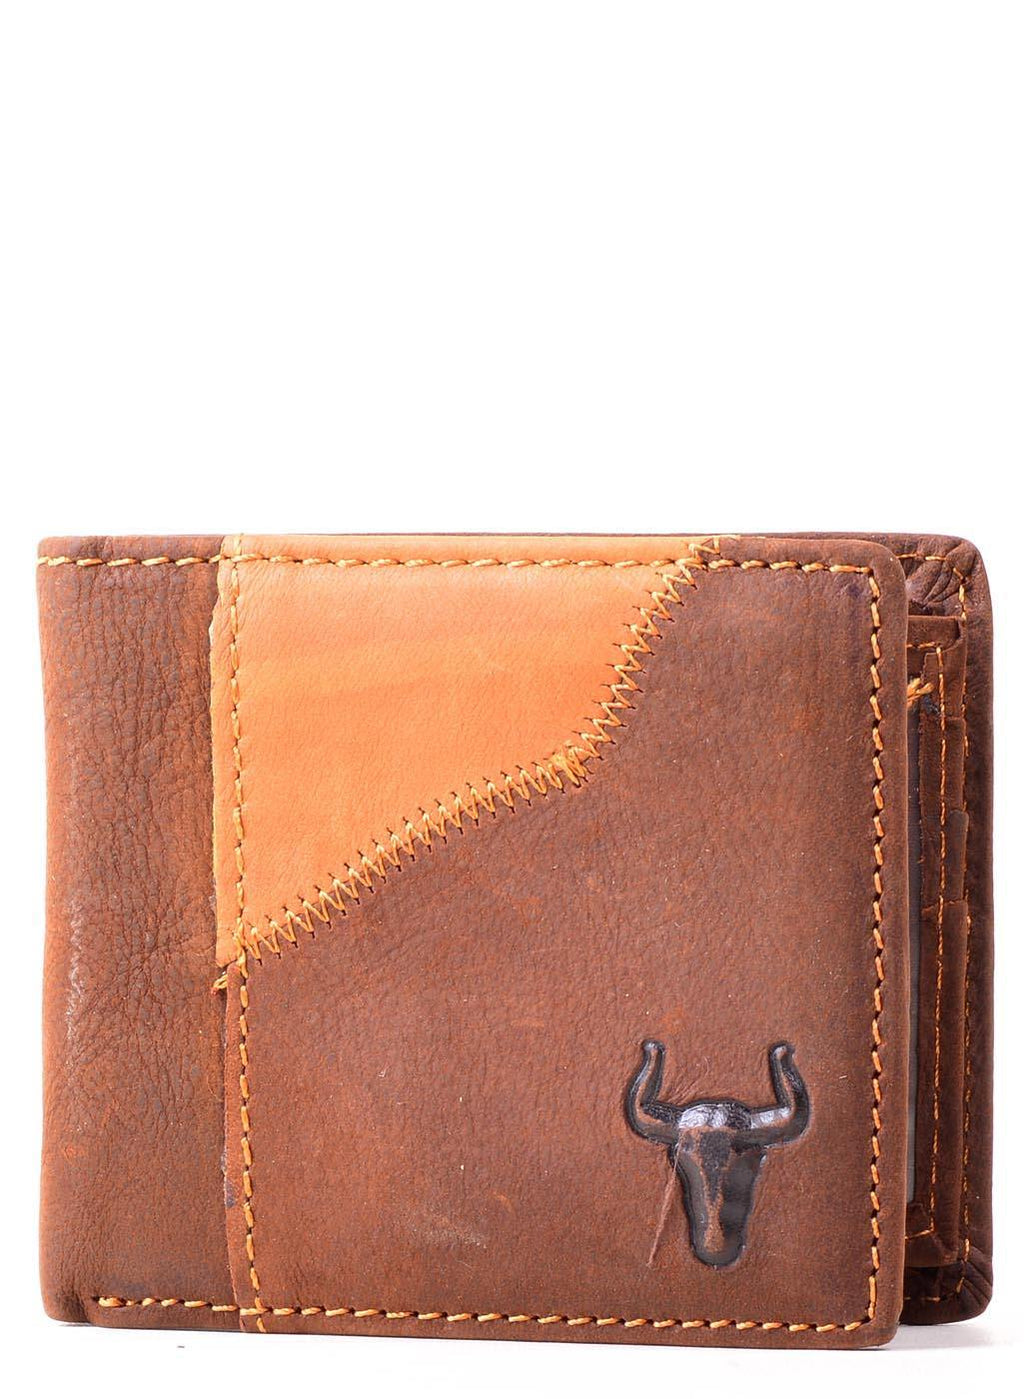 EthniCache Wallet Swanky Handmade Pure Leather Wallet